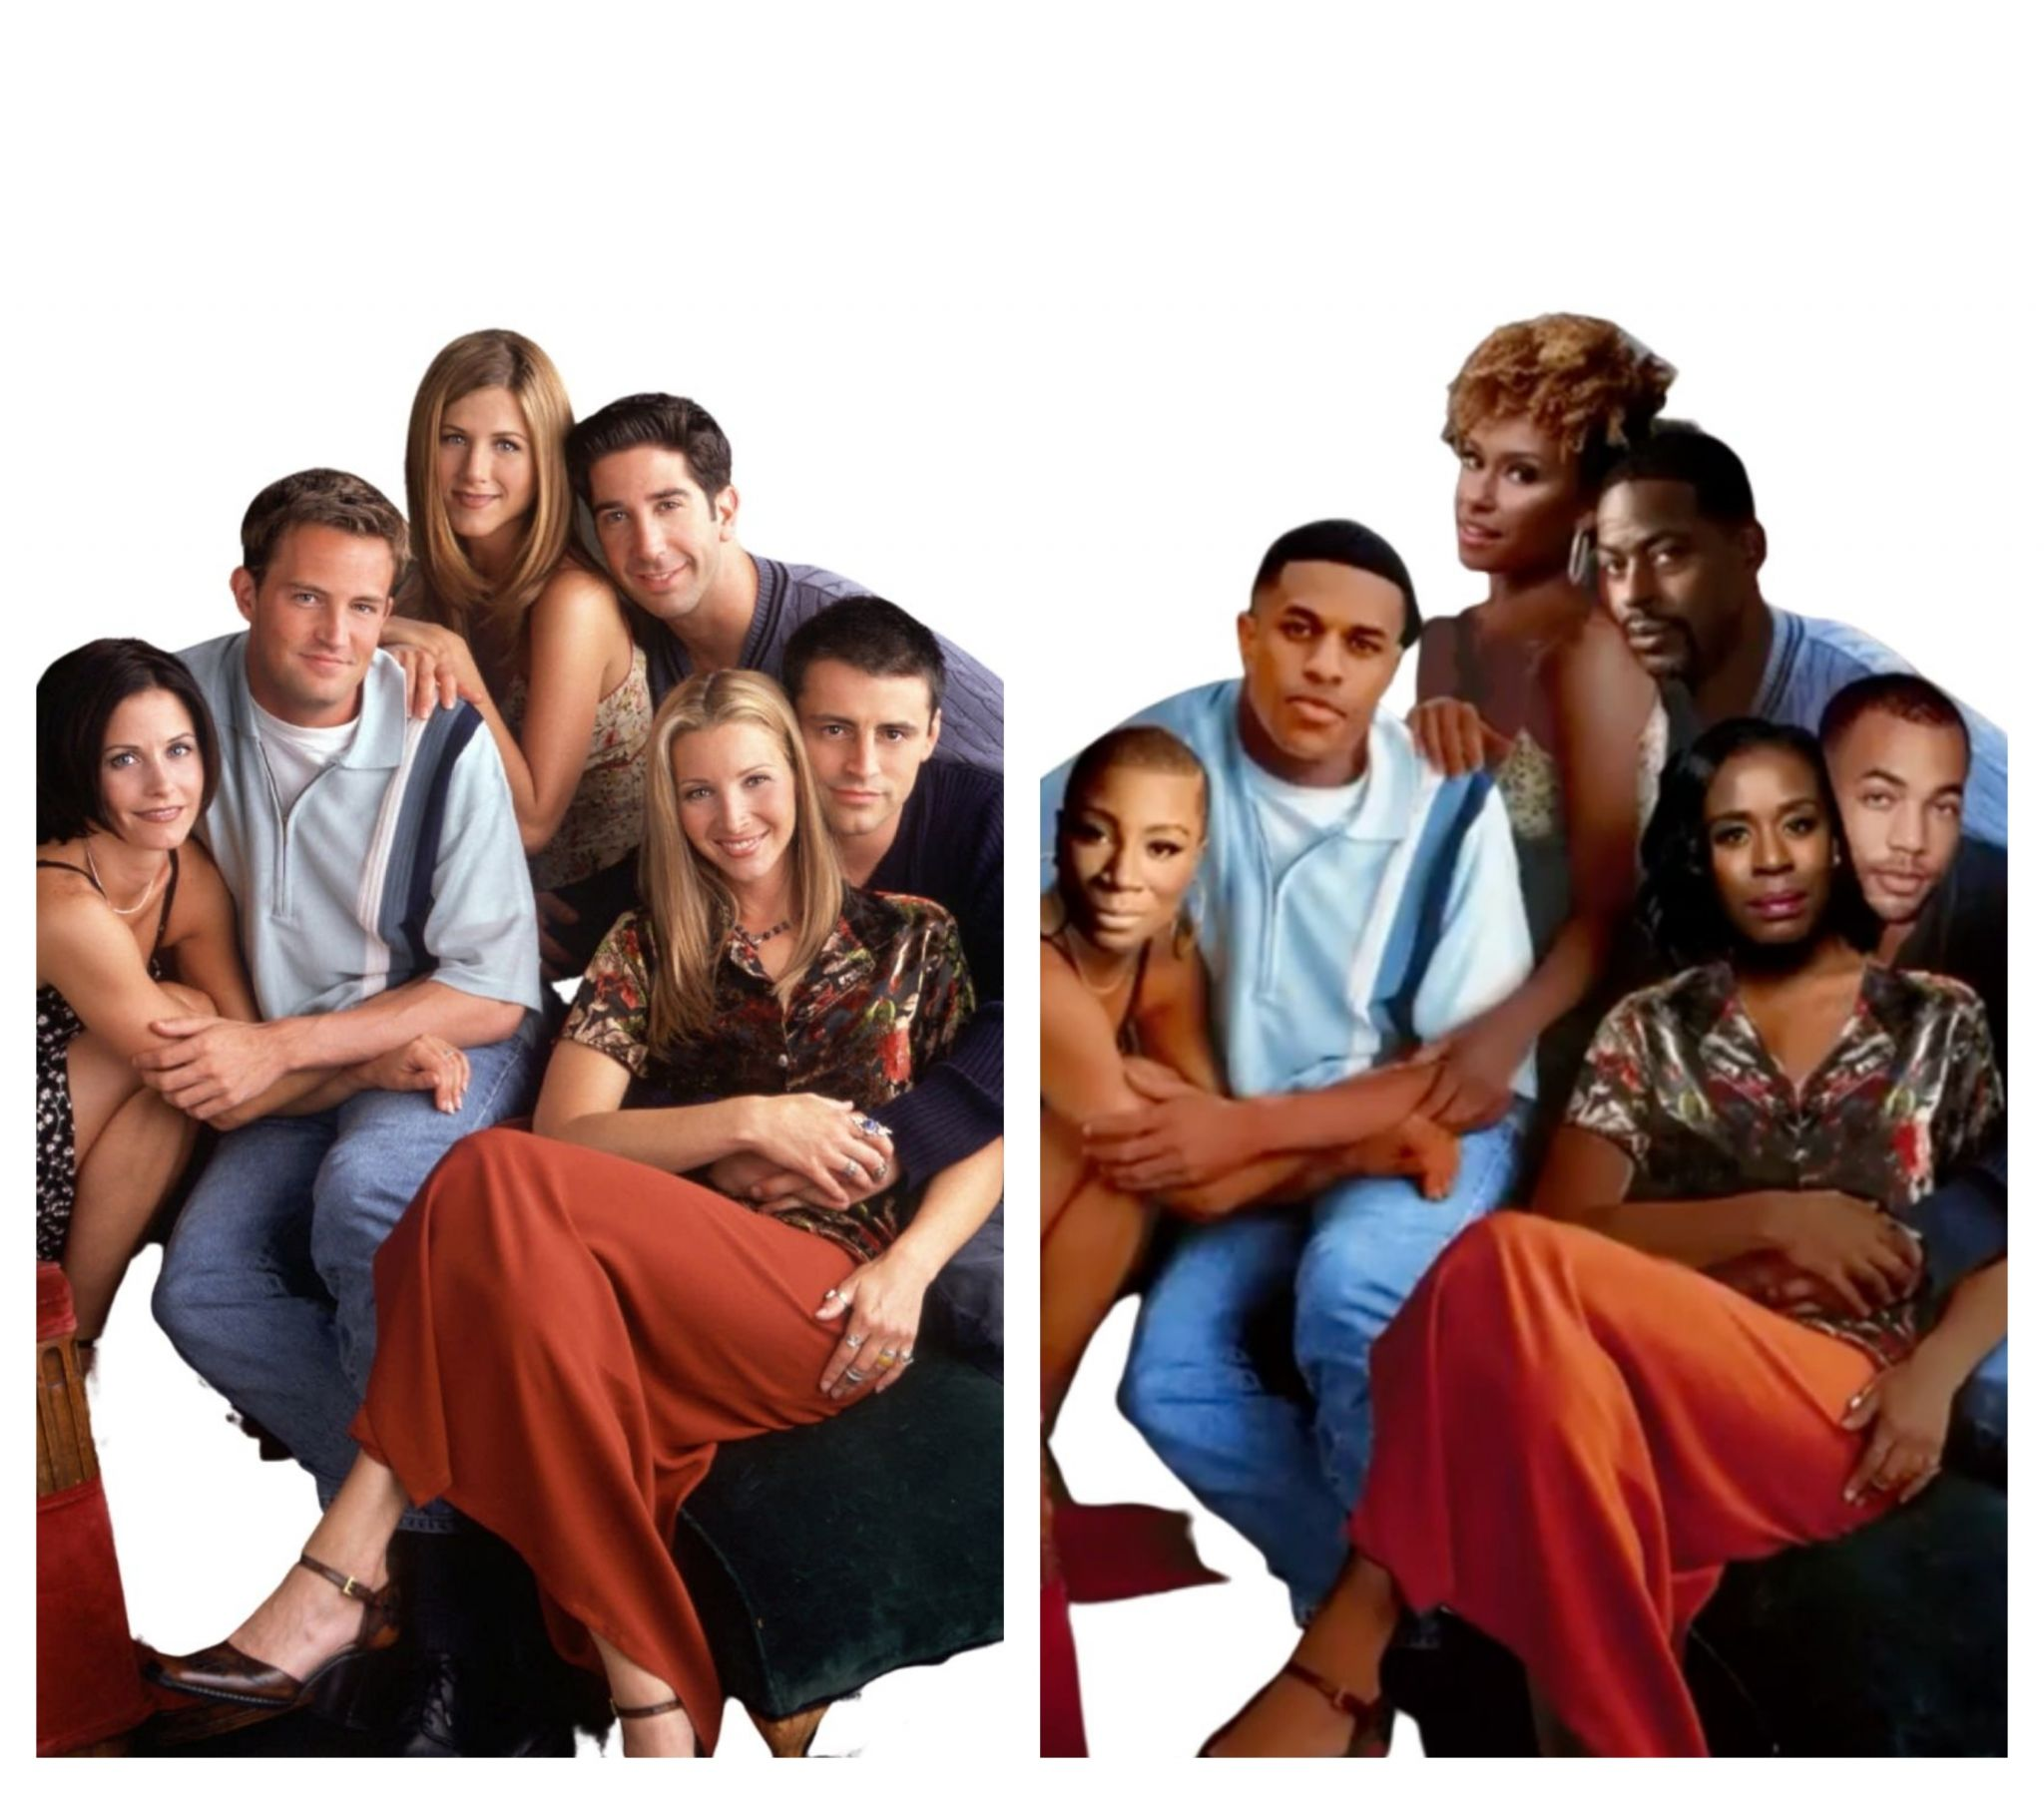 'Friends' gets remixed with all-Black cast for table read